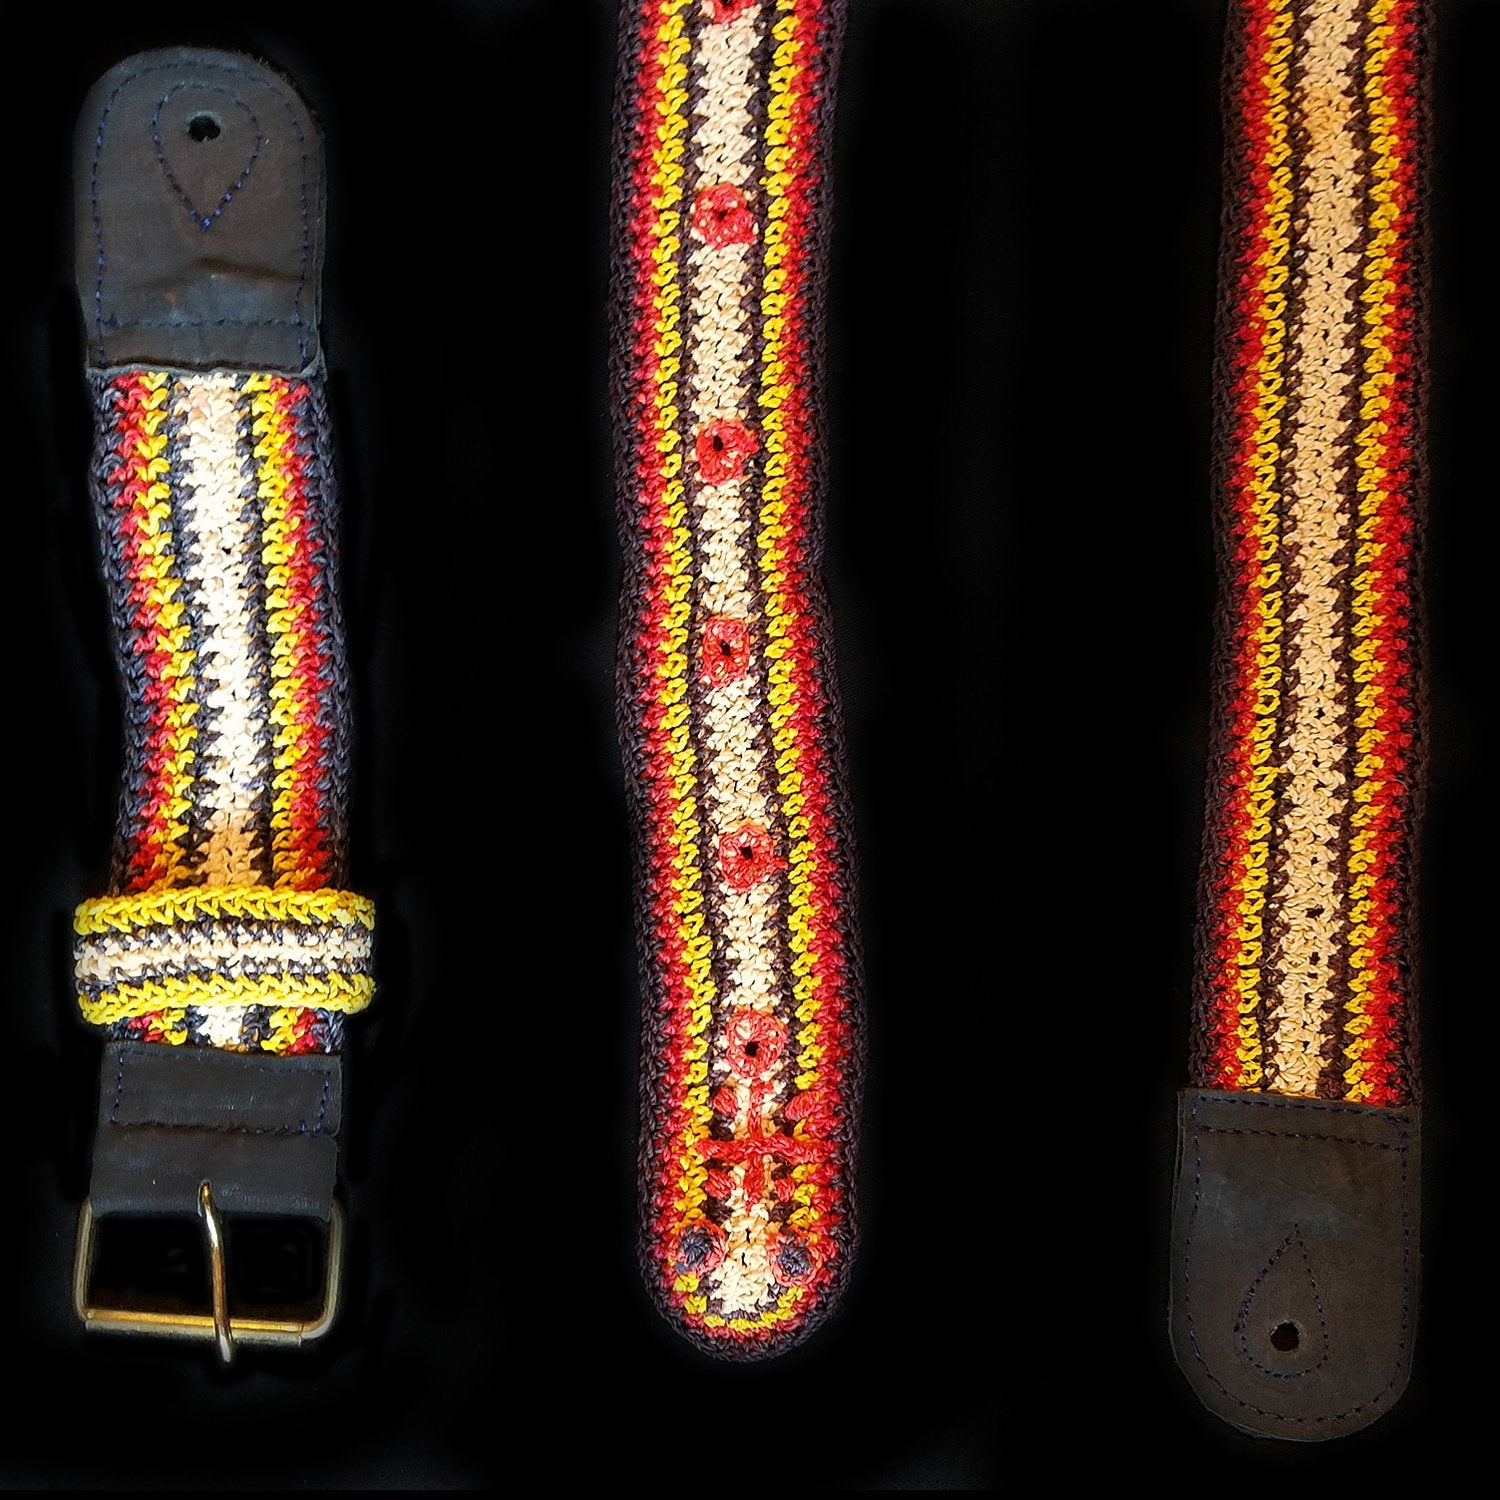 GS06A : Fair-trade hand-made Amazon guitar strap - bushmaster model